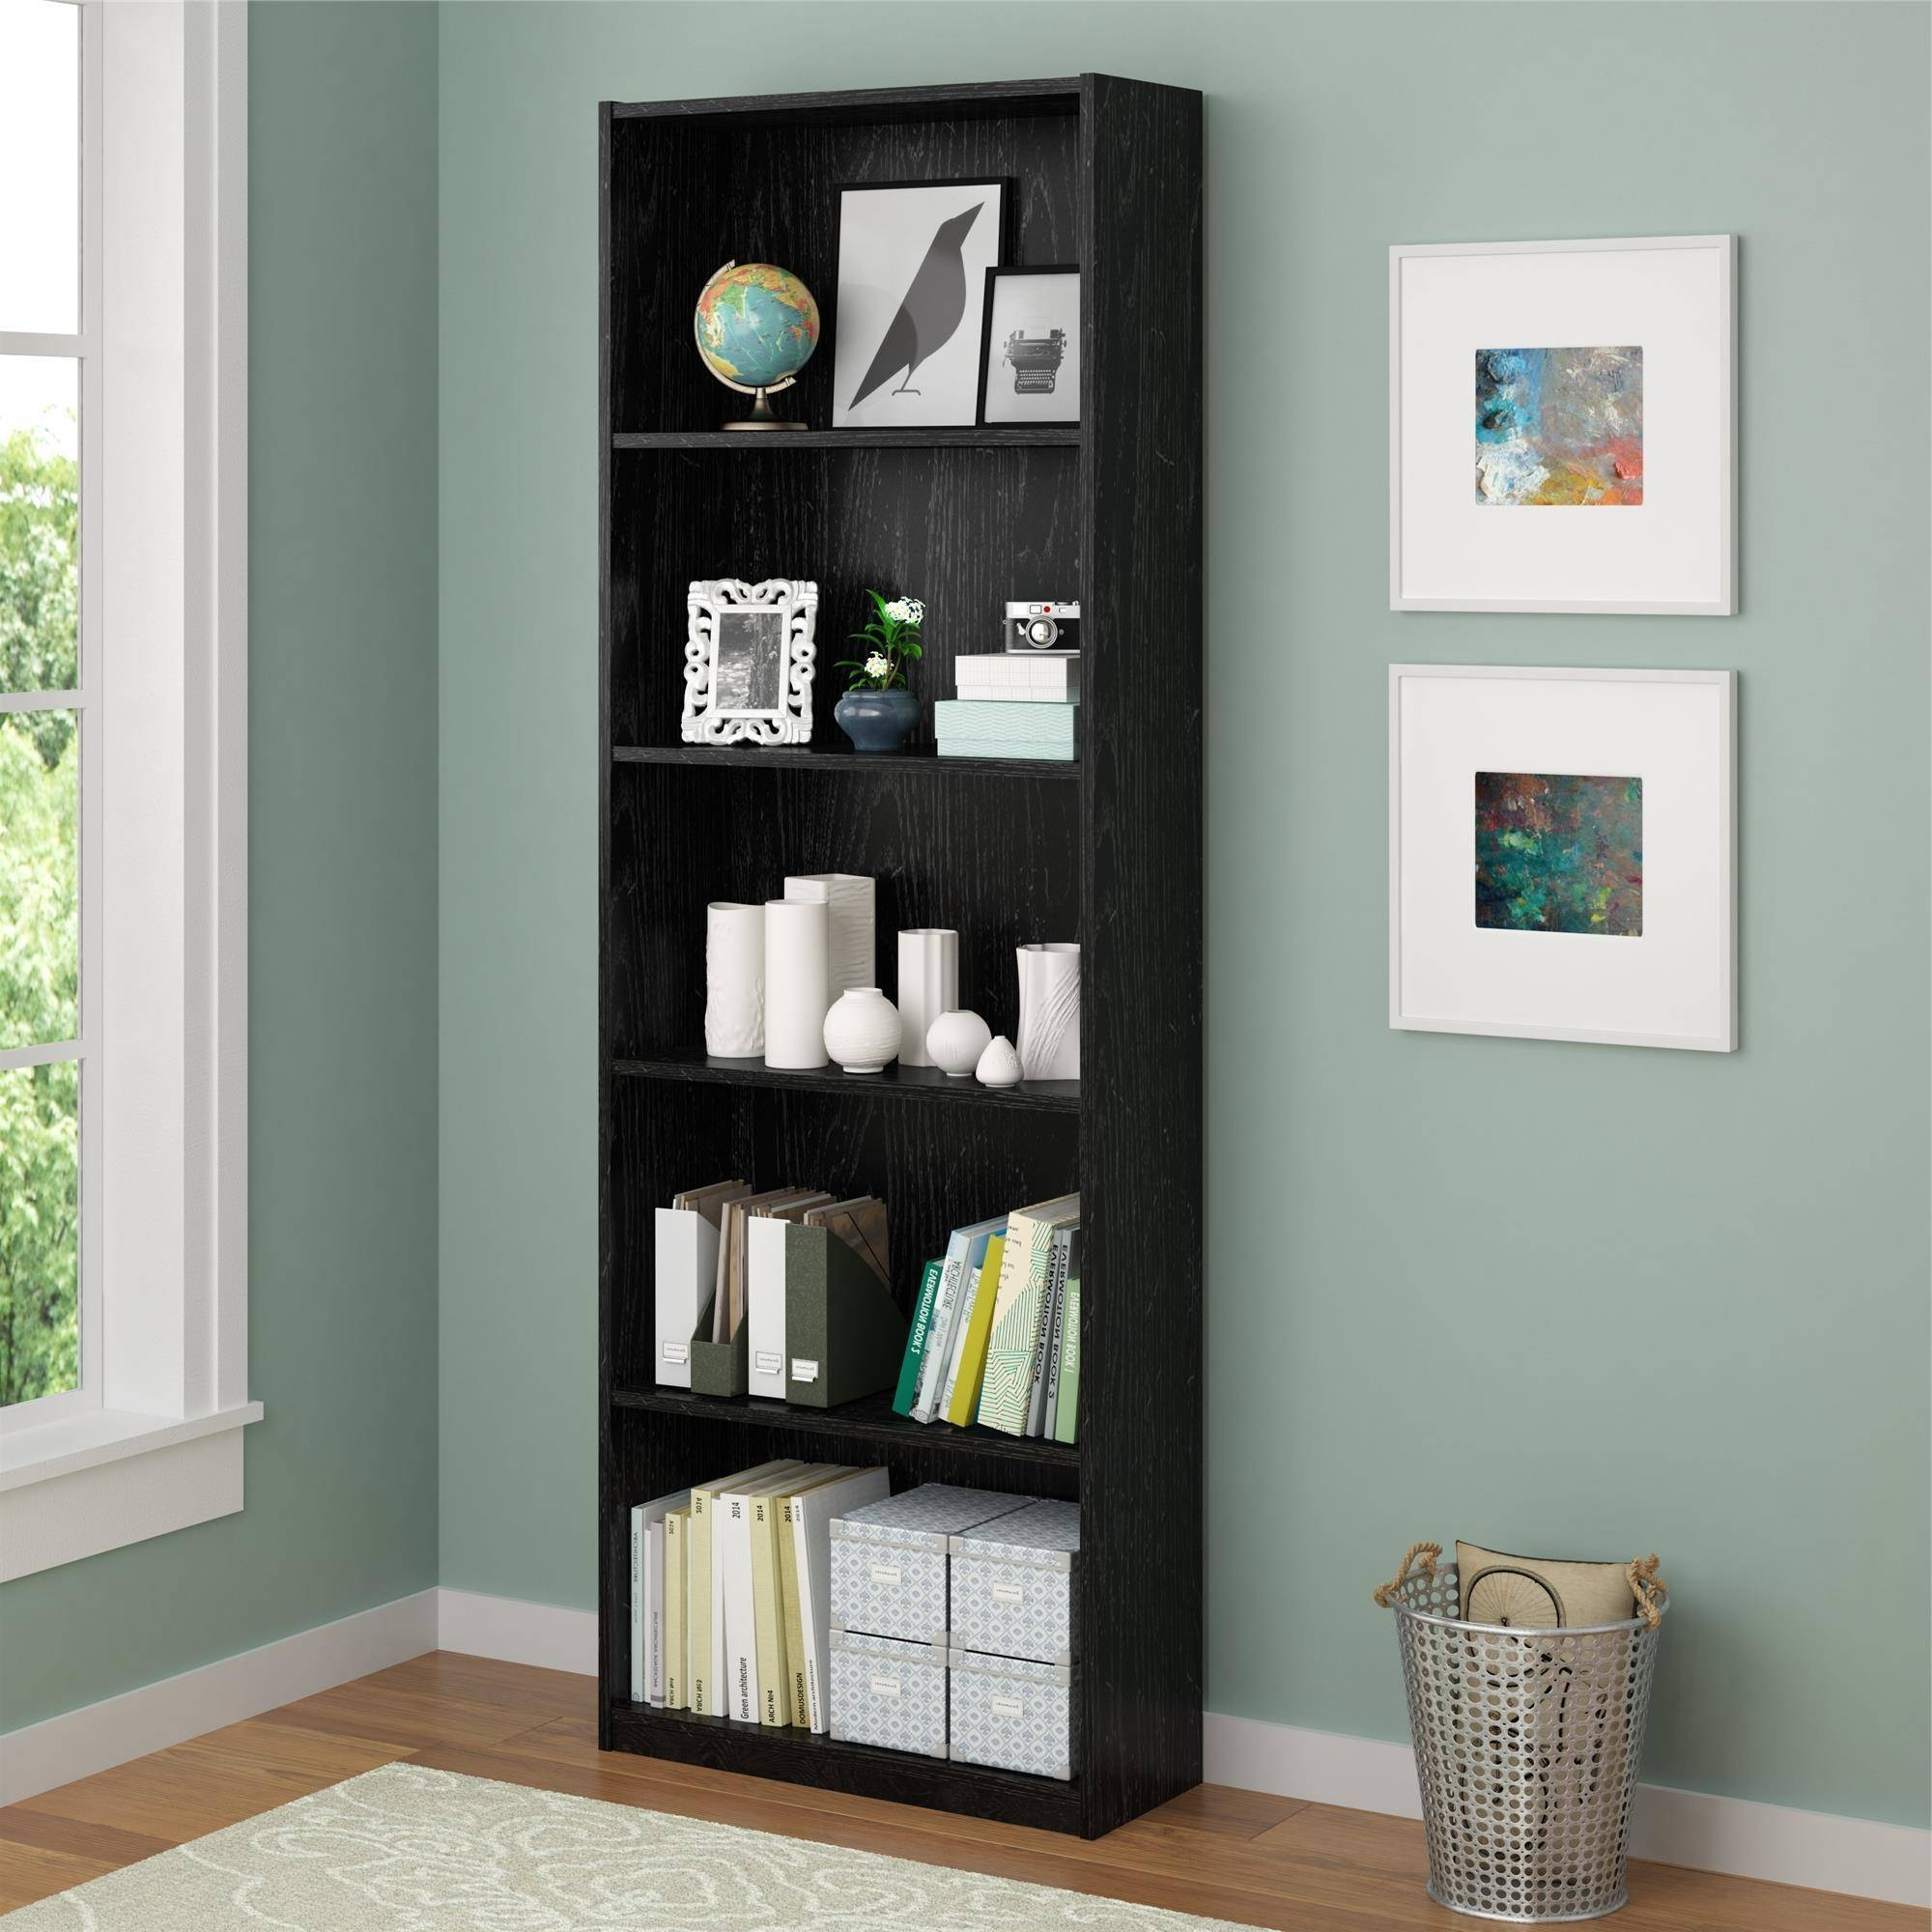 Most Recently Released Ameriwood 5 Shelf Bookcase, Multiple Colors – Walmart For 5 Shelf Bookcases (Gallery 14 of 15)